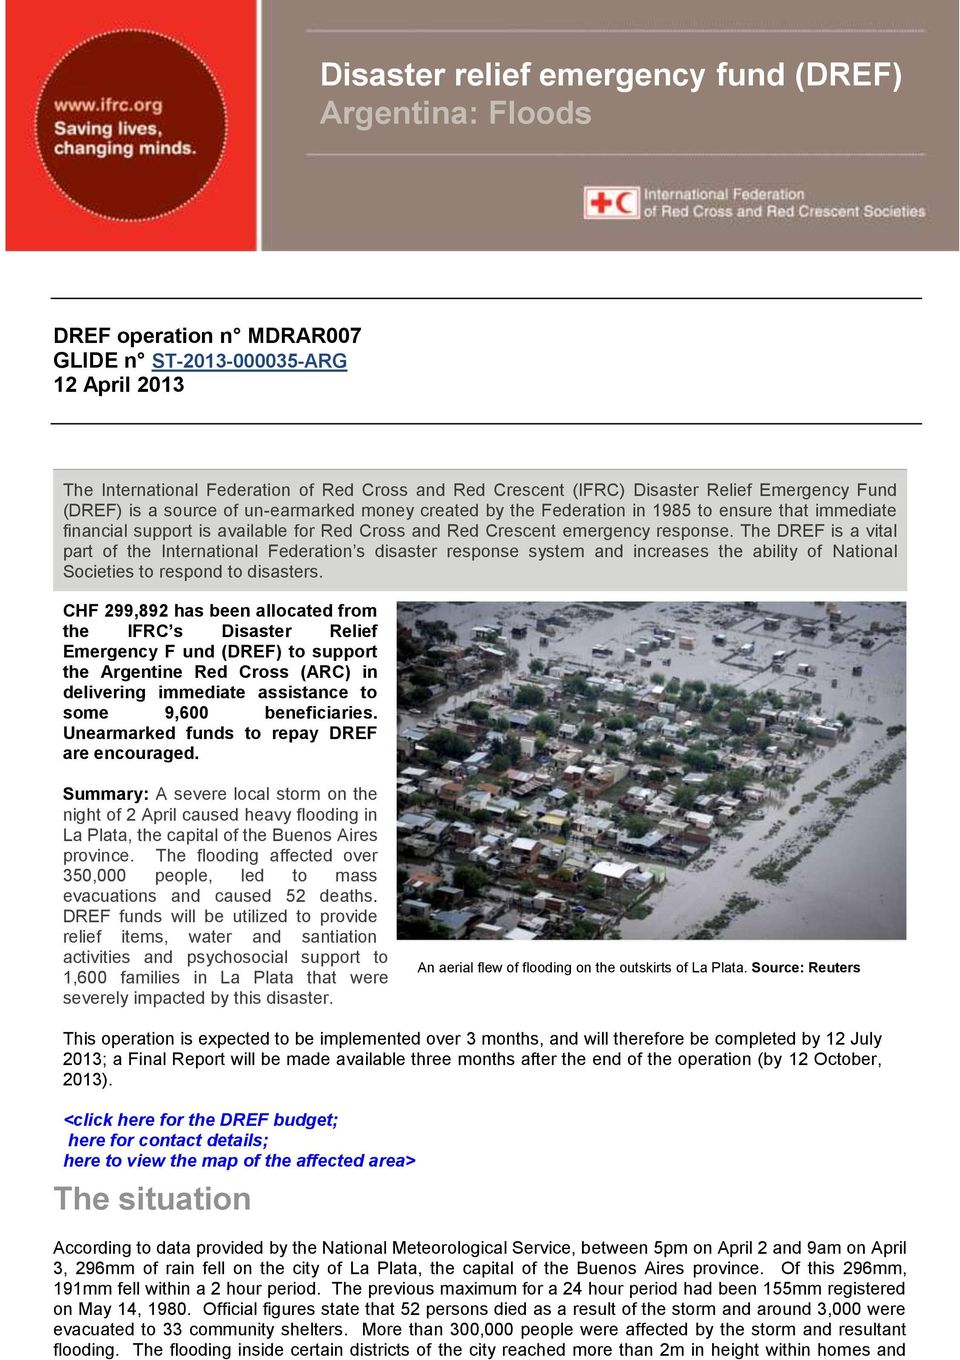 response. The DREF is a vital part of the International Federation s disaster response system and increases the ability of National Societies to respond to disasters.